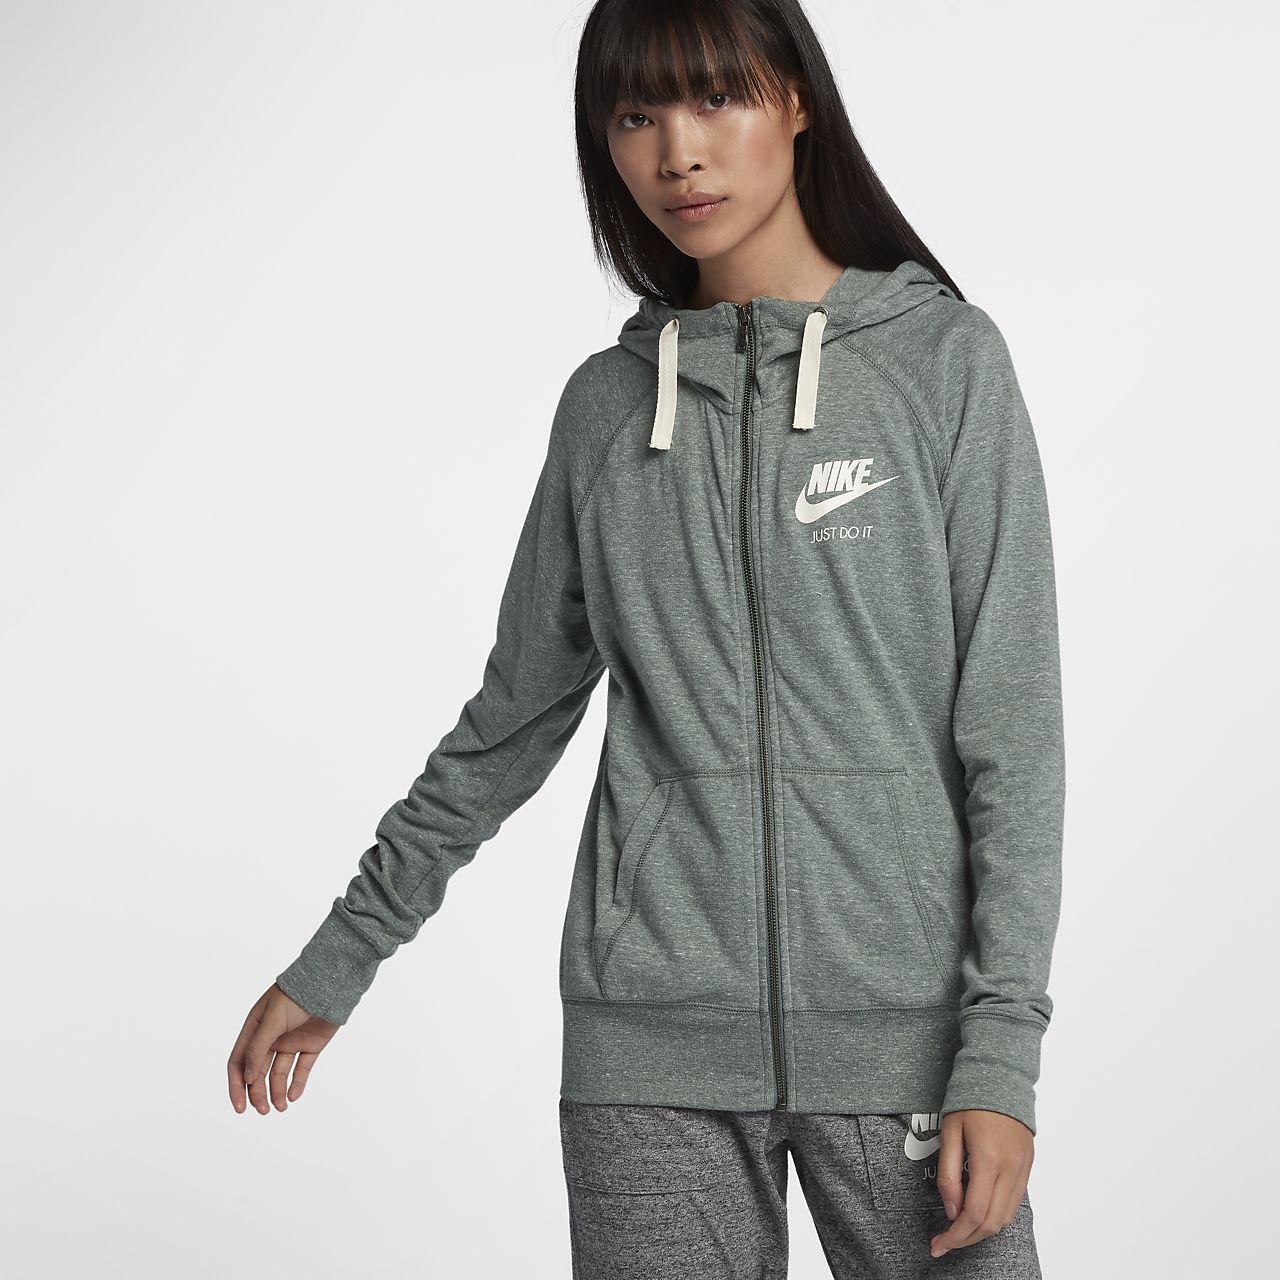 6be3b479c20f Nike Sportswear Gym Vintage Women s Full-Zip Hoodie